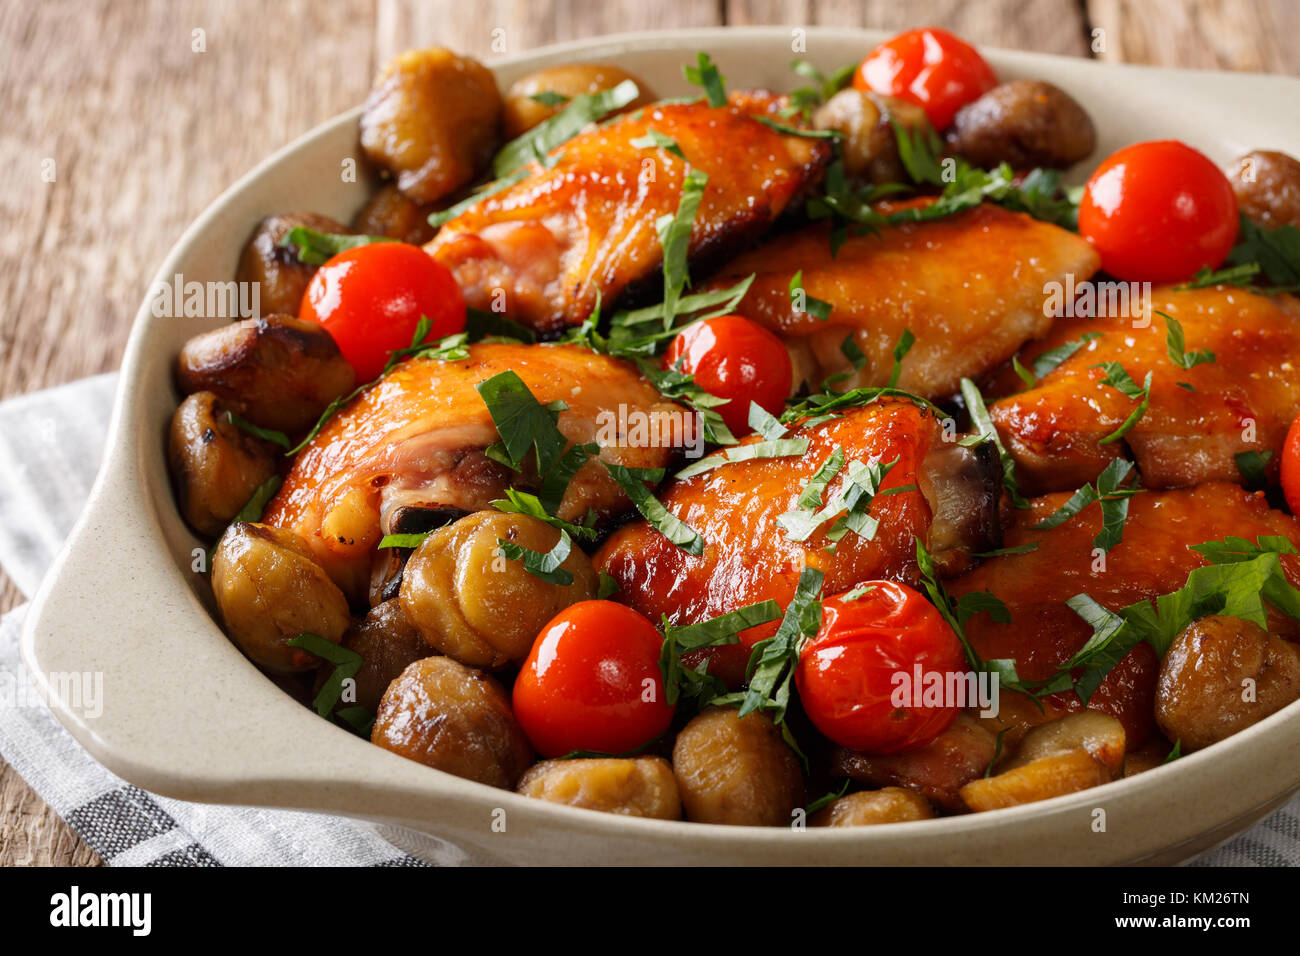 Fried chicken with chestnuts, greens and tomatoes close-up in a bowl on the table. horizontal - Stock Image